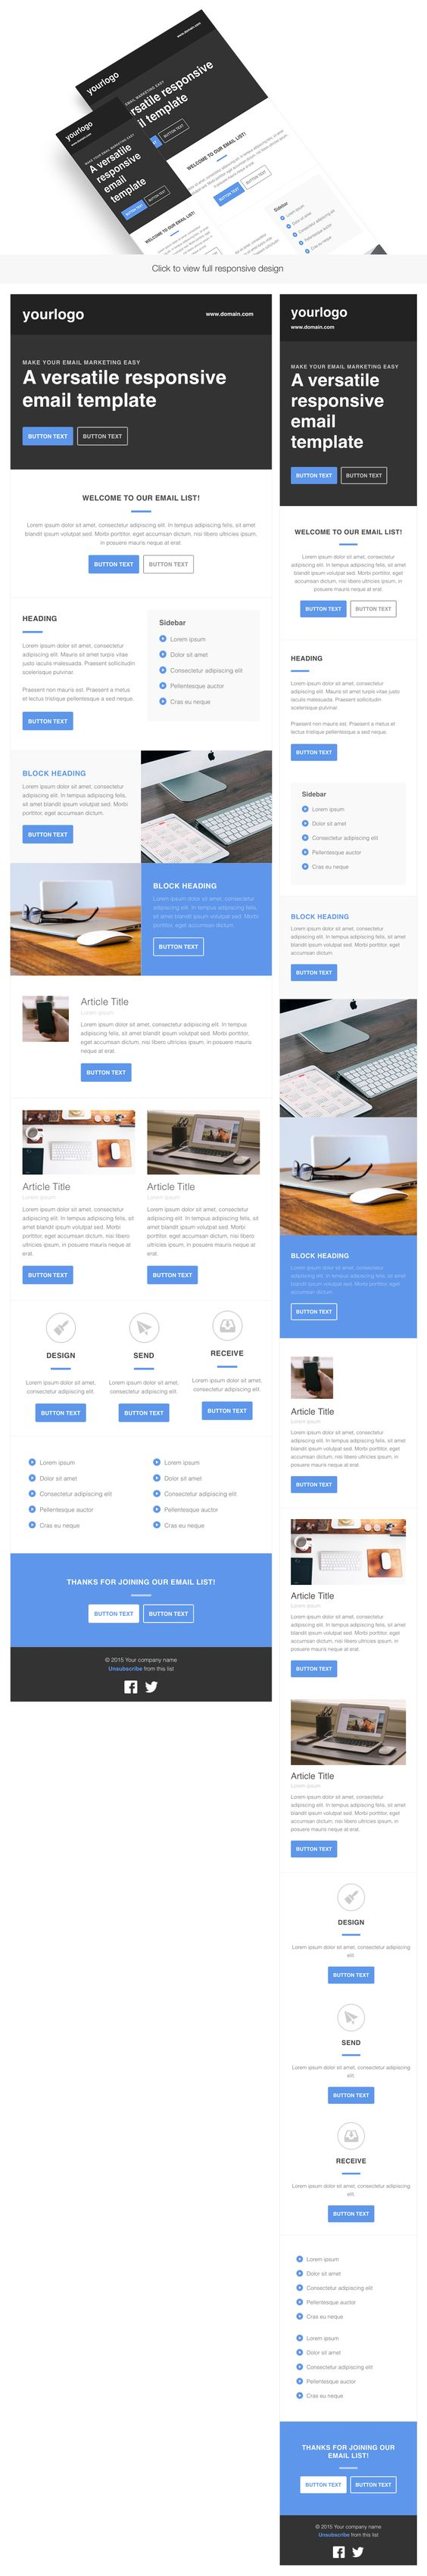 1000 ideas about html email templates on pinterest email templates responsive email and. Black Bedroom Furniture Sets. Home Design Ideas